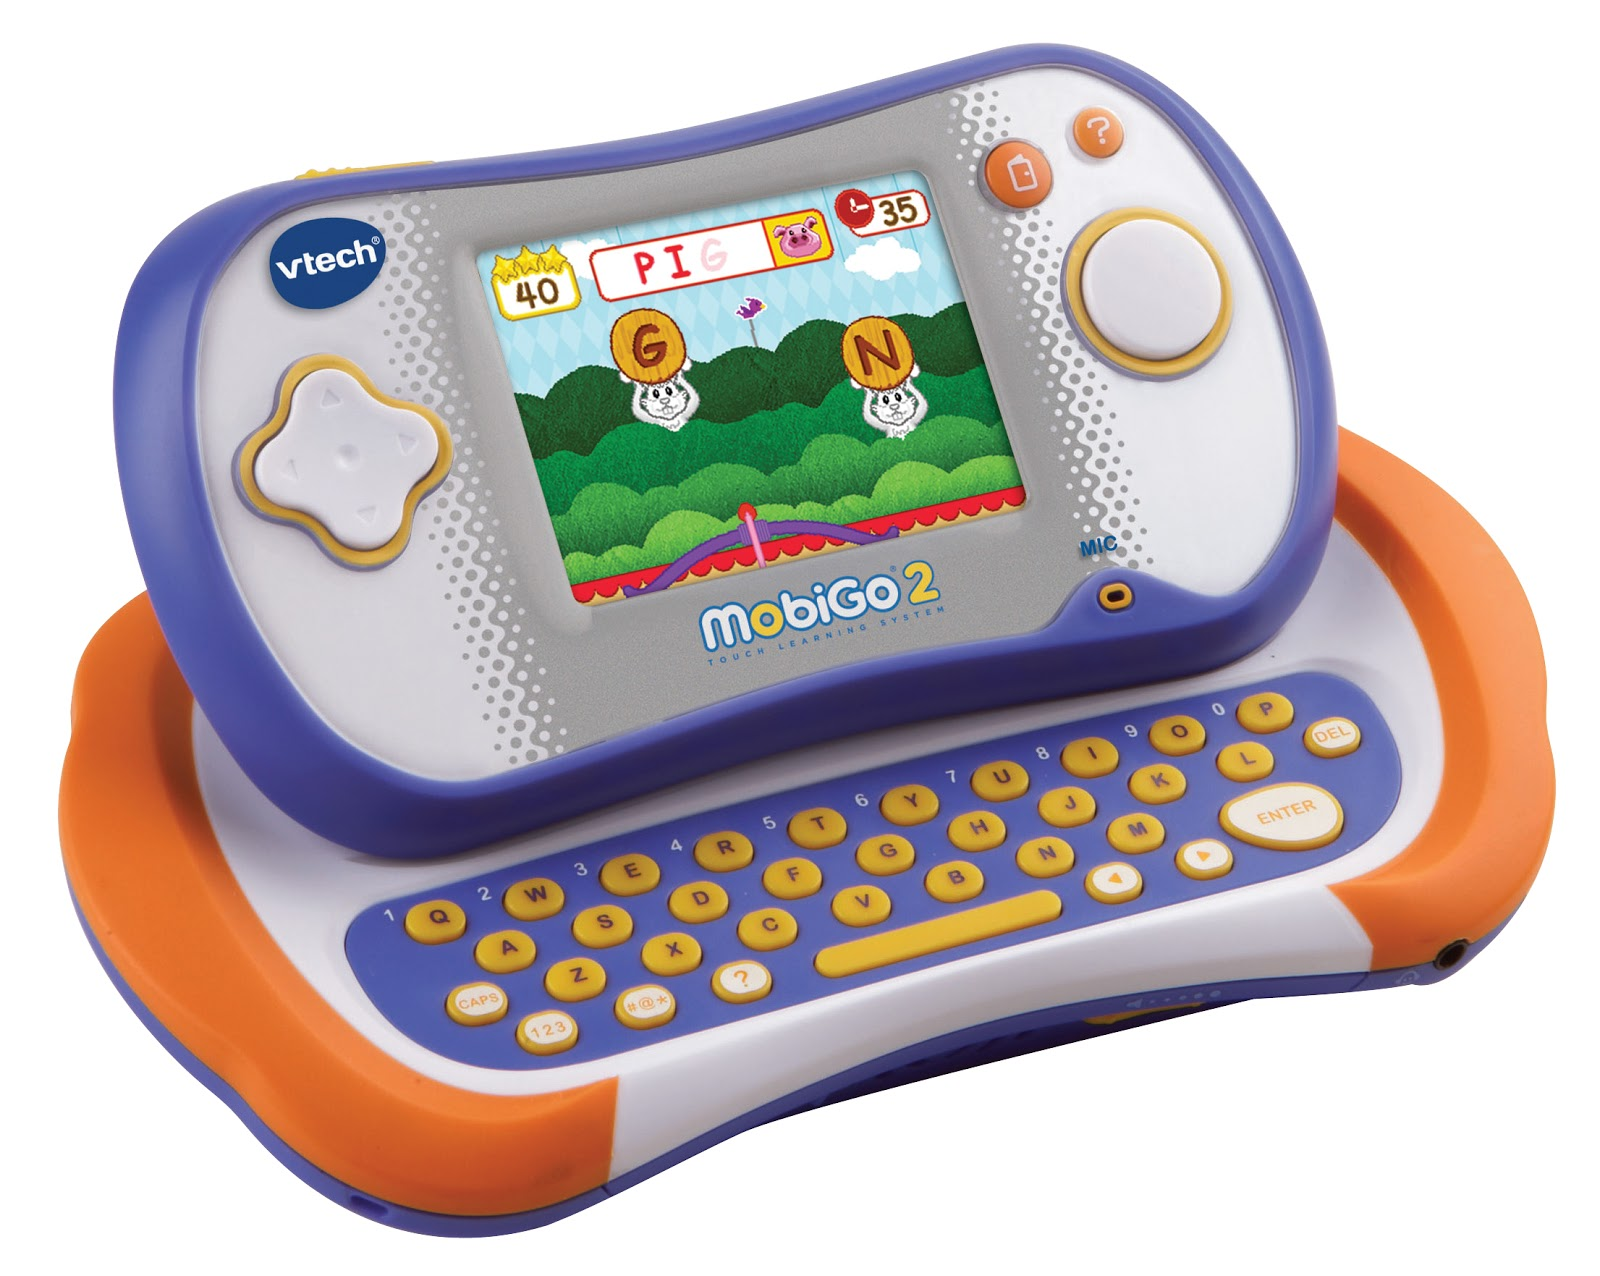 Electronic Learning Toys For Toddlers : Top tech gift picks for ages fort worth star